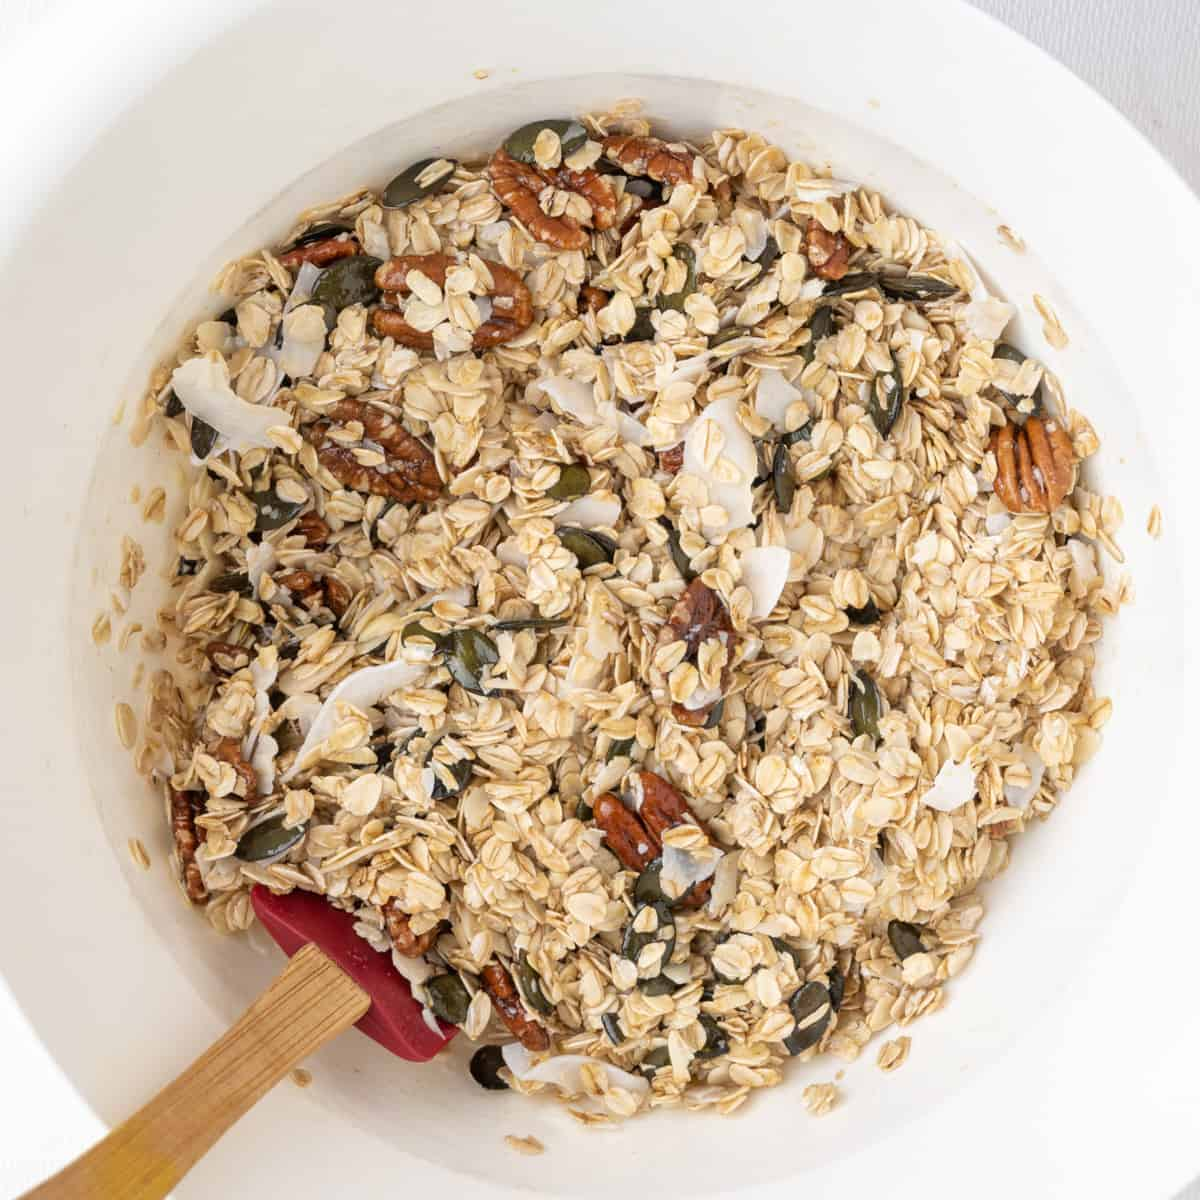 A large mixing bowl in which the granola ingredients get combined.